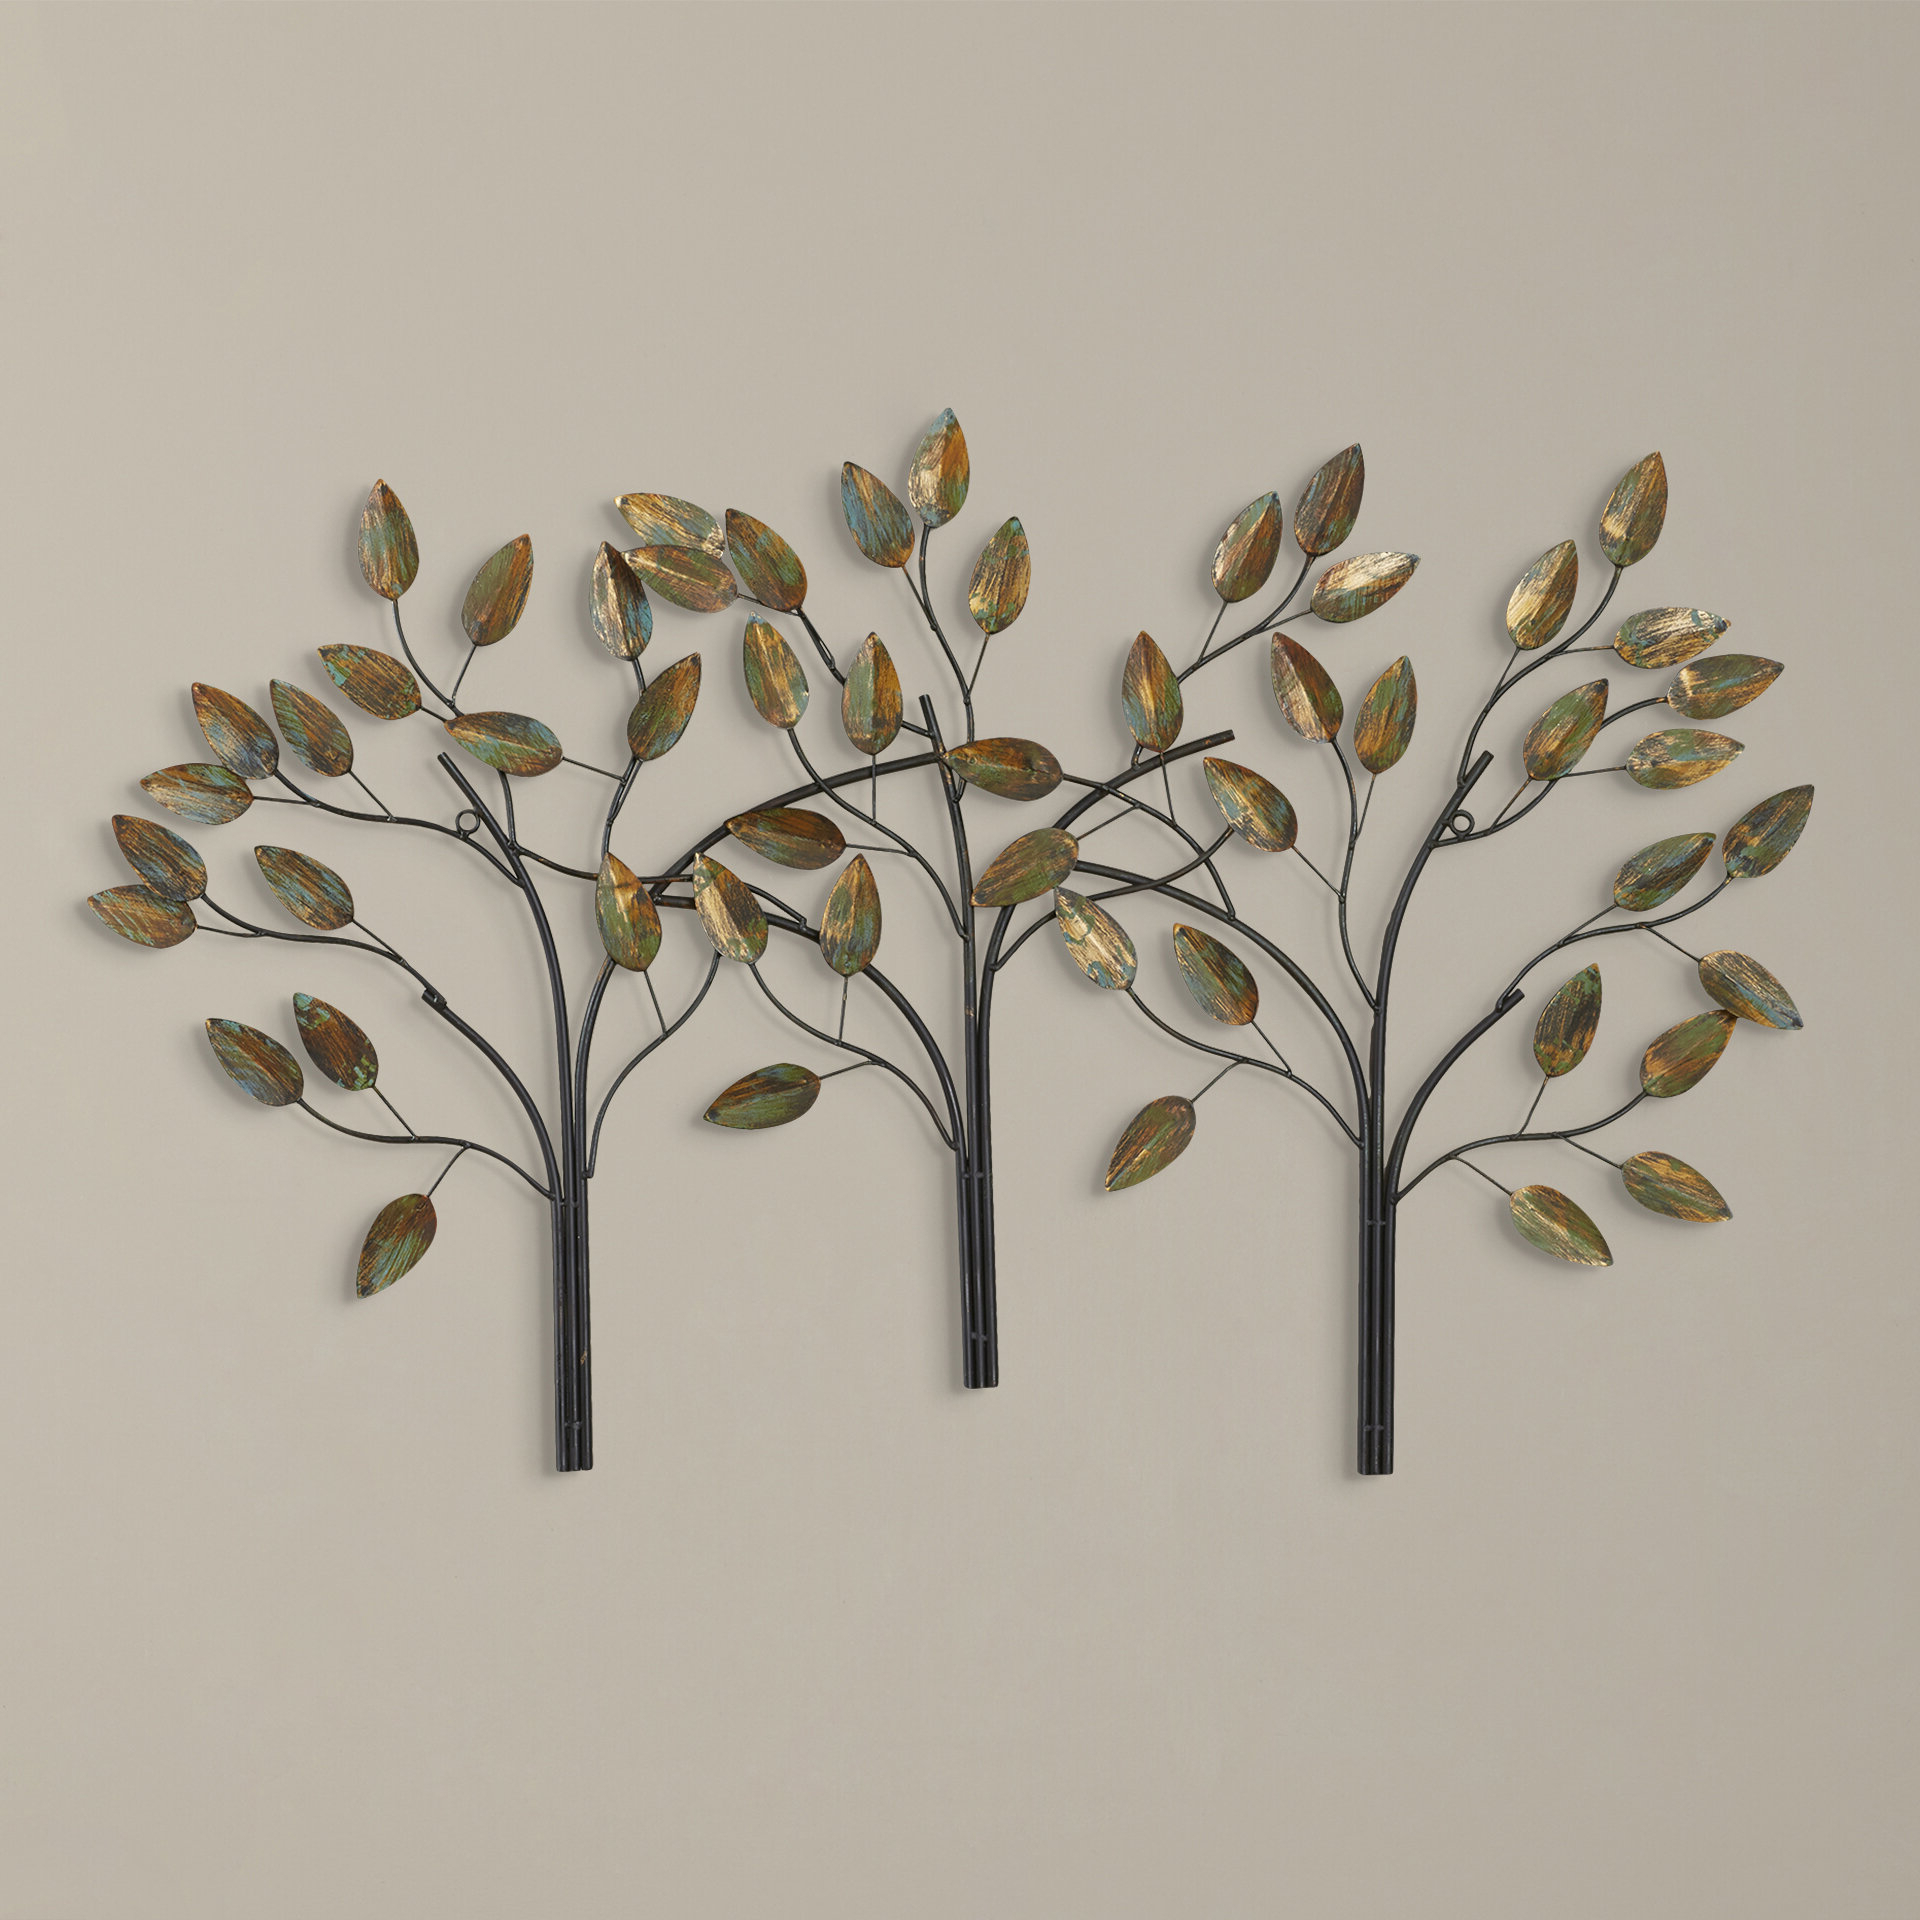 Metal Wall Décor By Charlton Home Pertaining To Preferred Wall Decorations Ideas: Wall Decor Leaf (View 13 of 20)